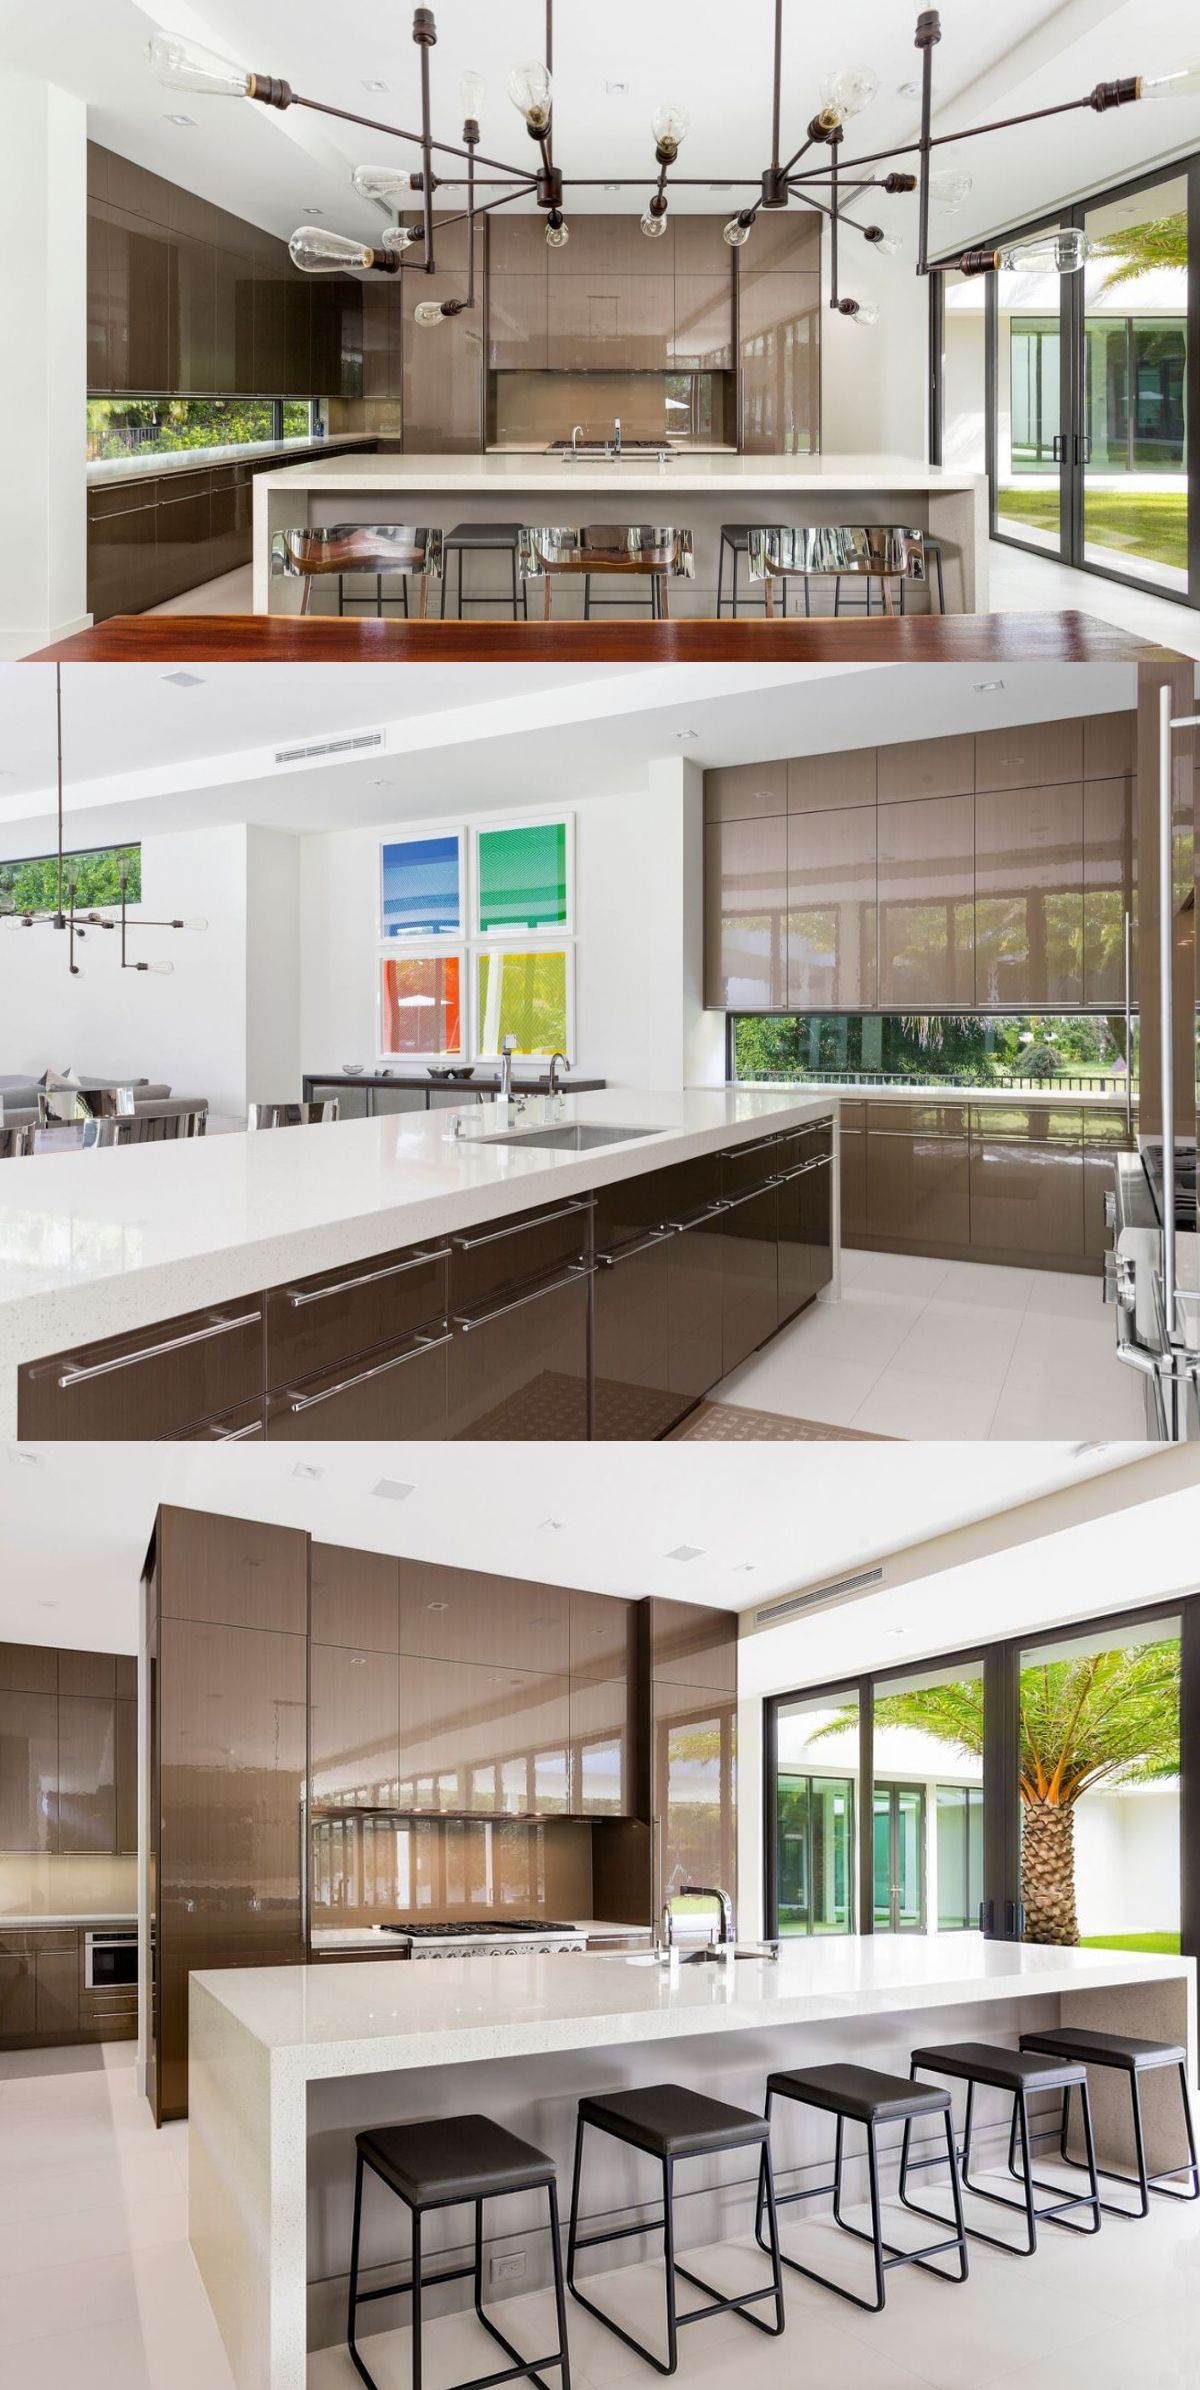 Kitchen Remodeling Boca Raton Minimalist Cool Boca Raton Fl  Contemporary Feel  Pinterest  Kitchen Styling . Design Ideas